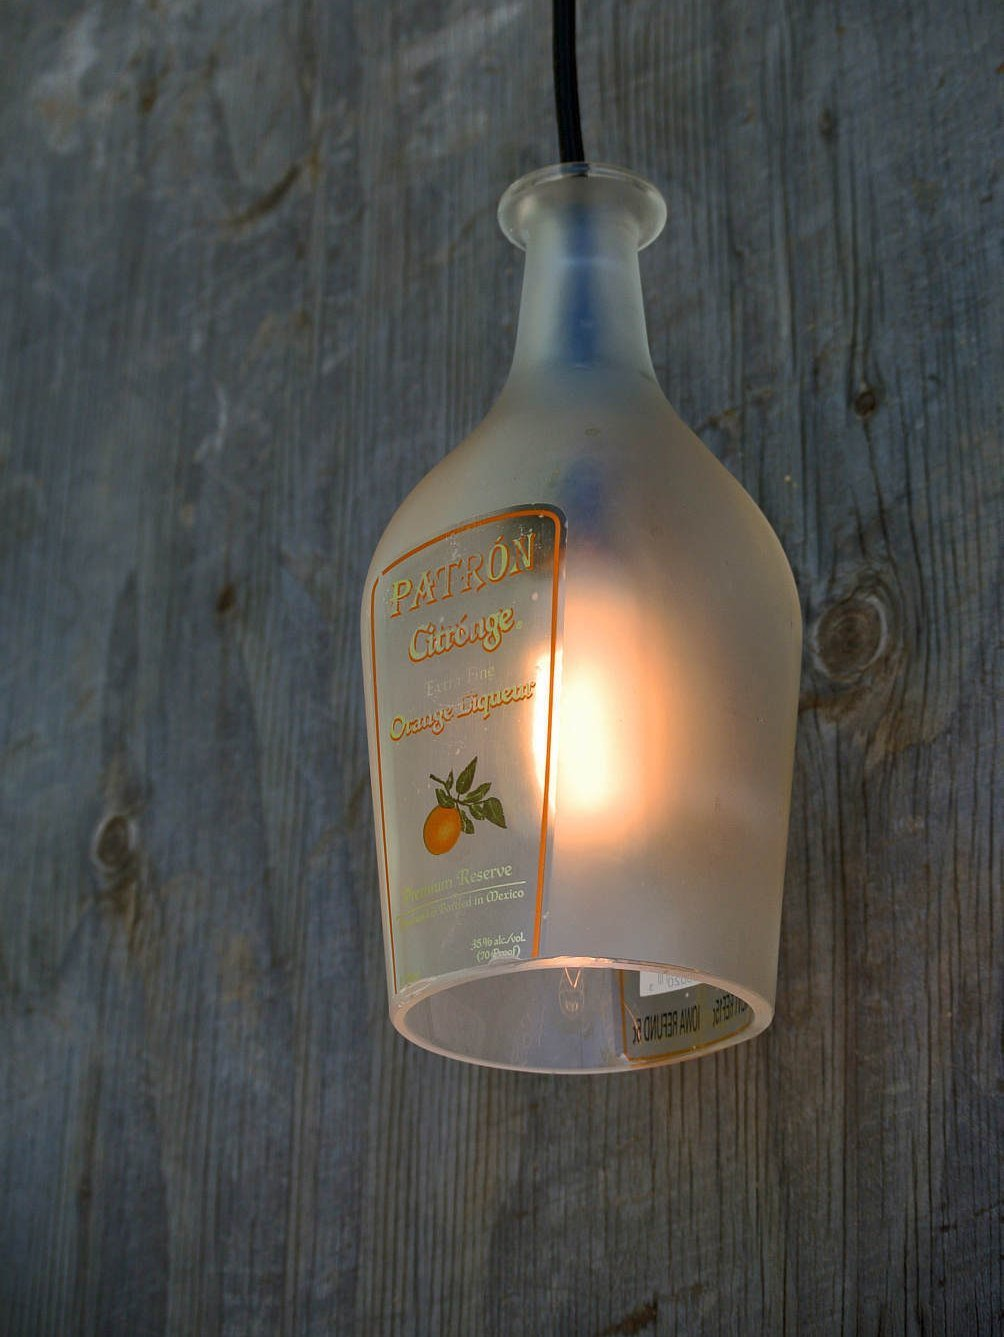 Patron Frosted Tequila Pendant Light Shade - Bottle Light